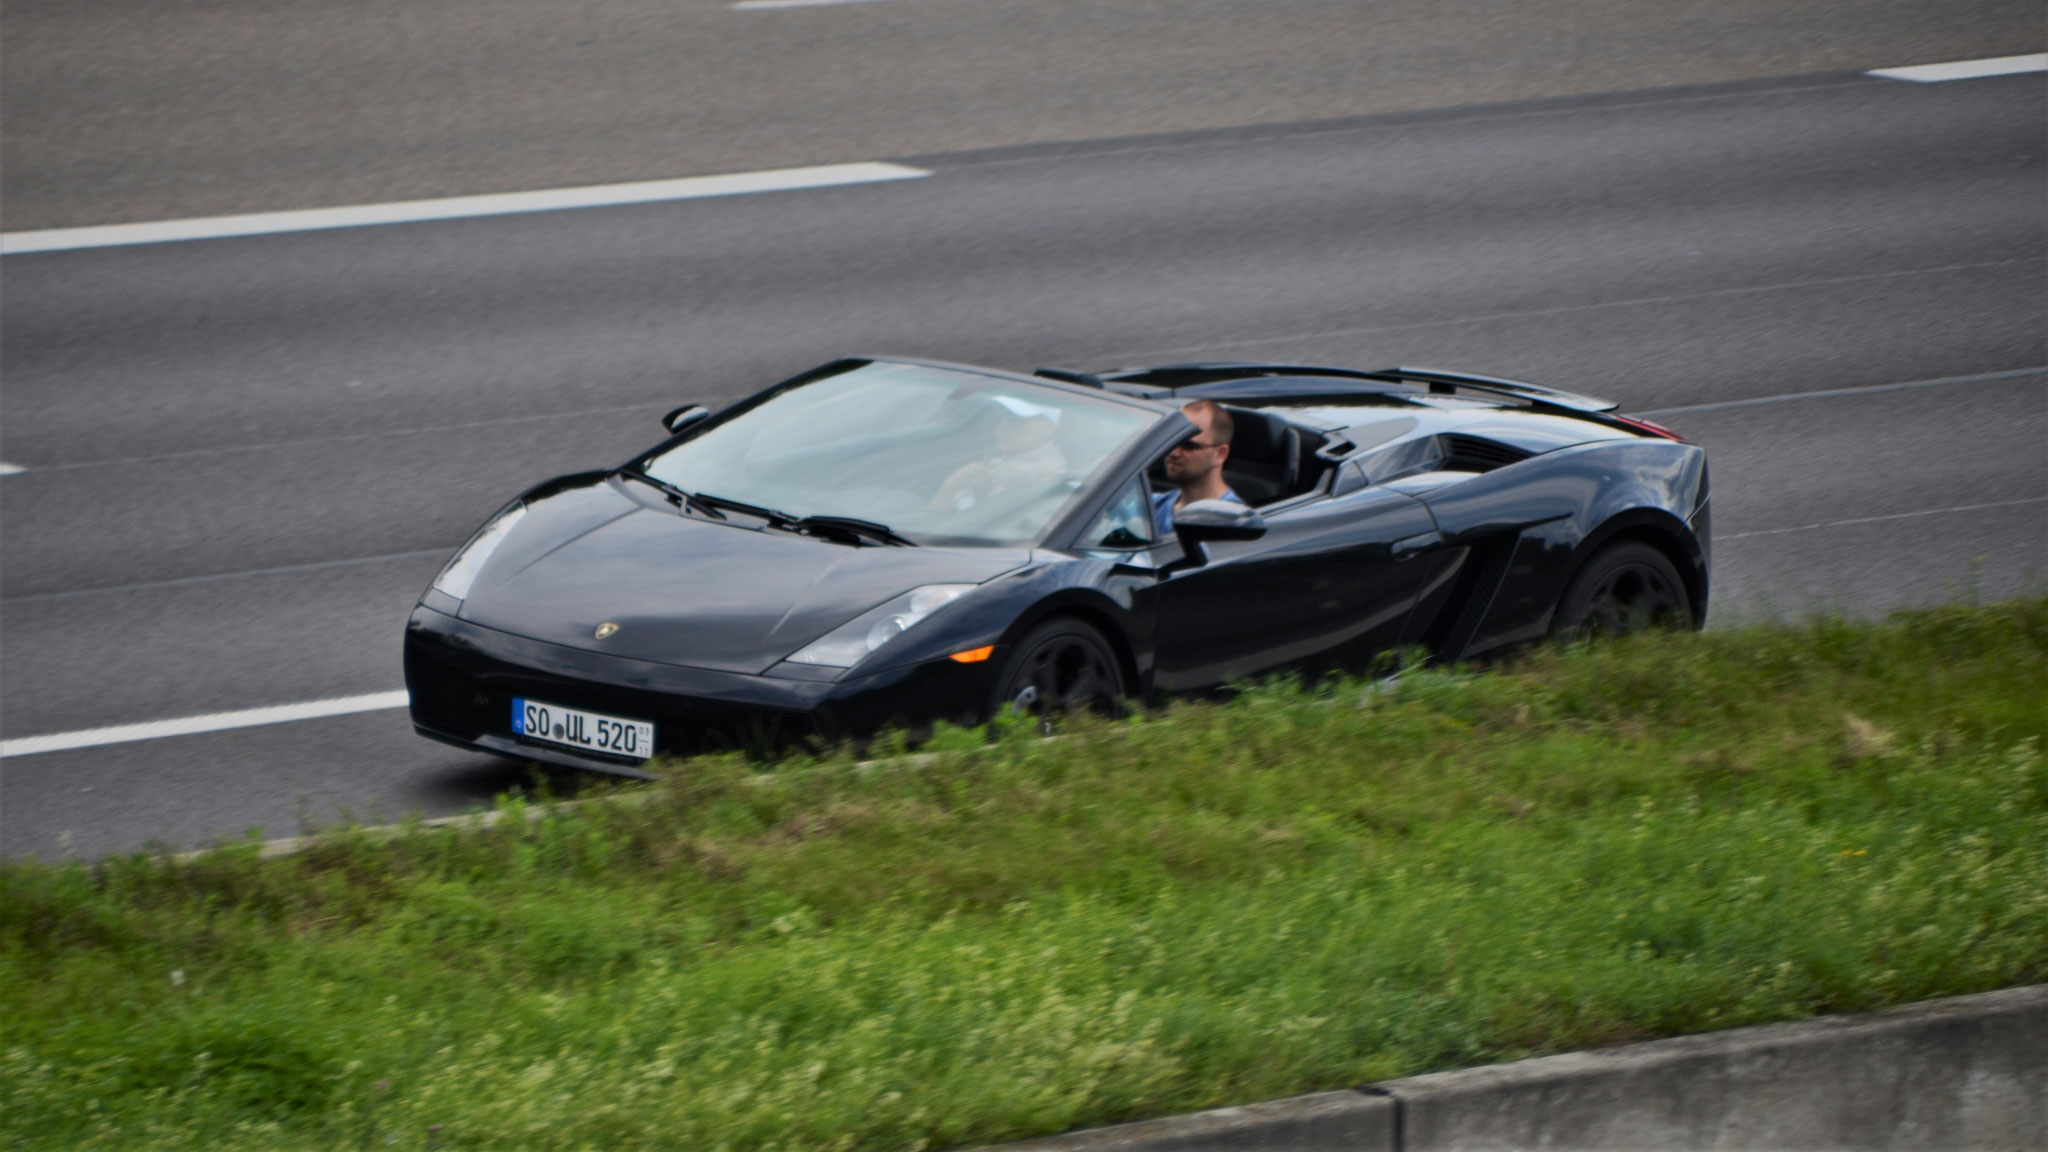 Lamborghini Gallardo LP 520 Spyder - SO-UL-520